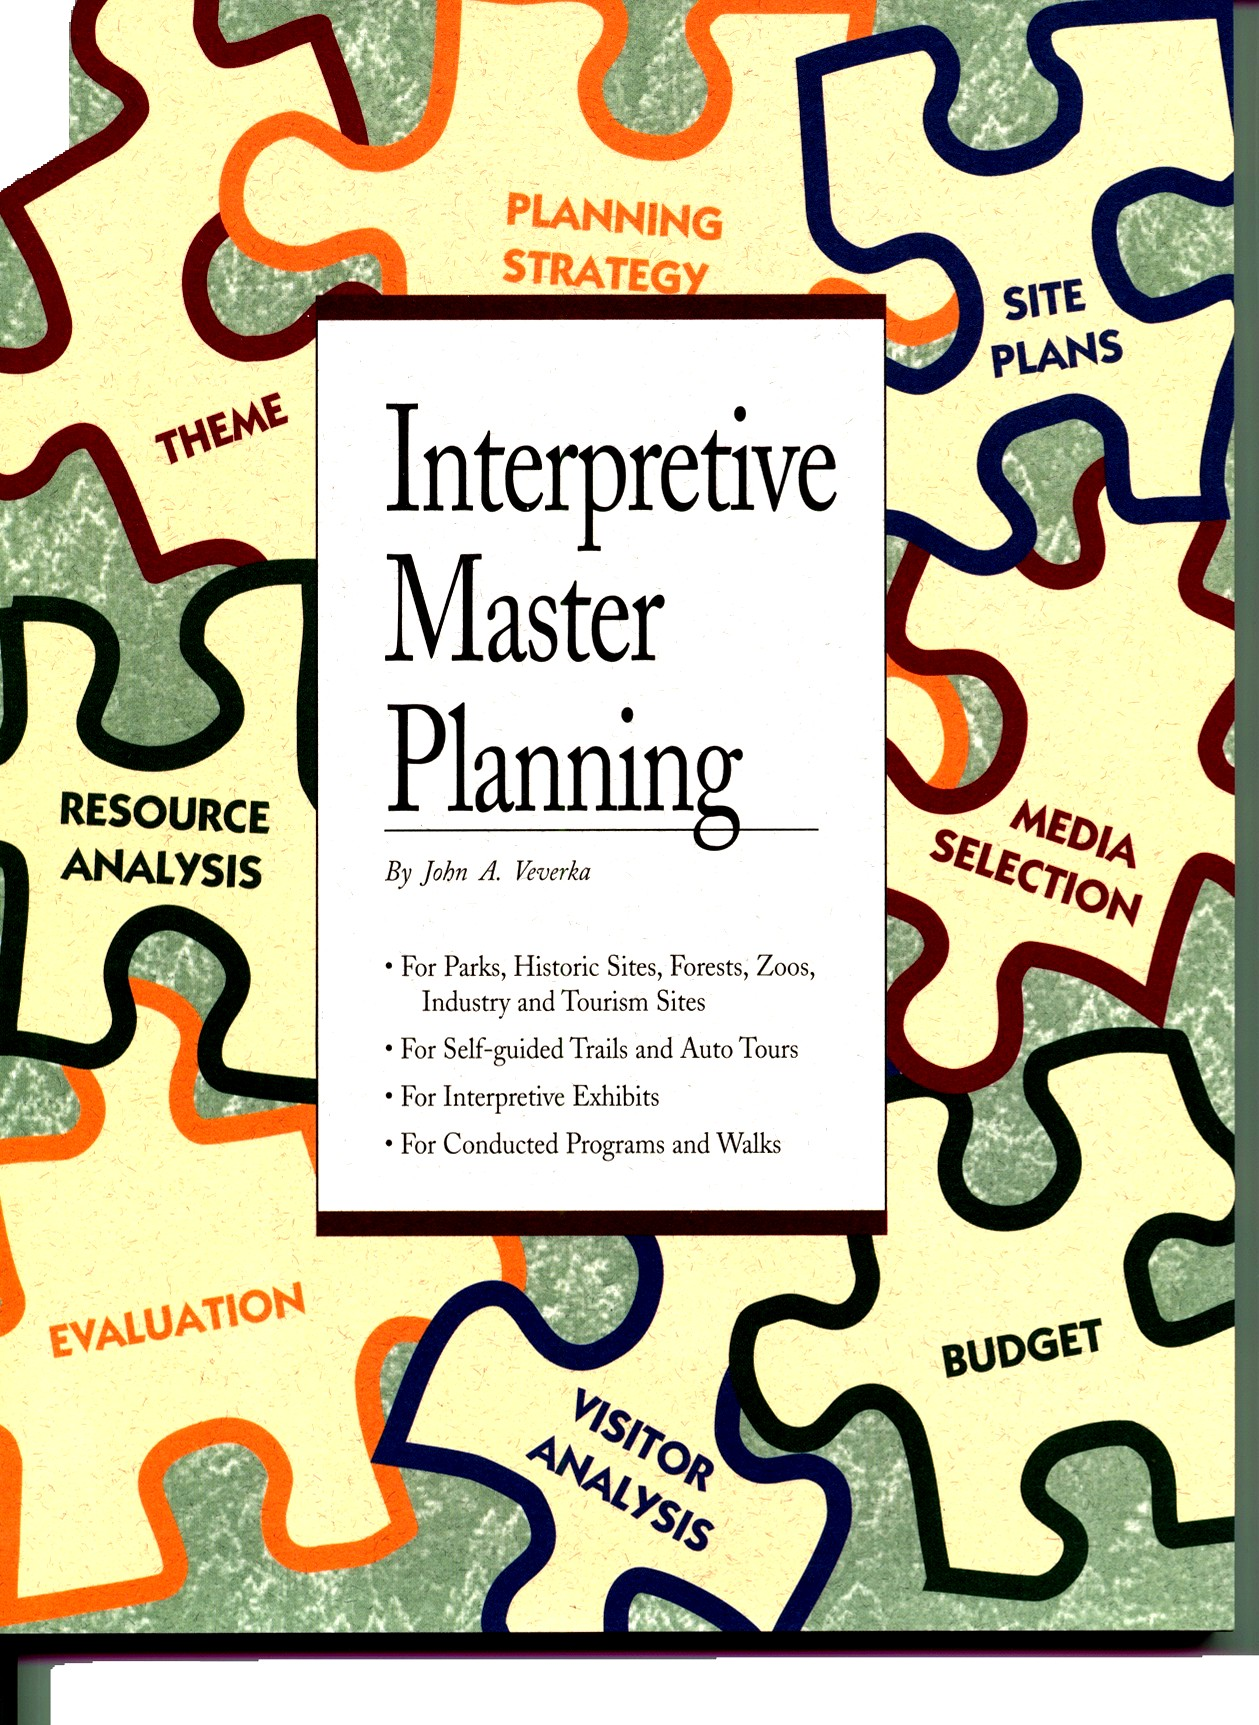 JV Master Planning Book.jpg (576345 bytes)